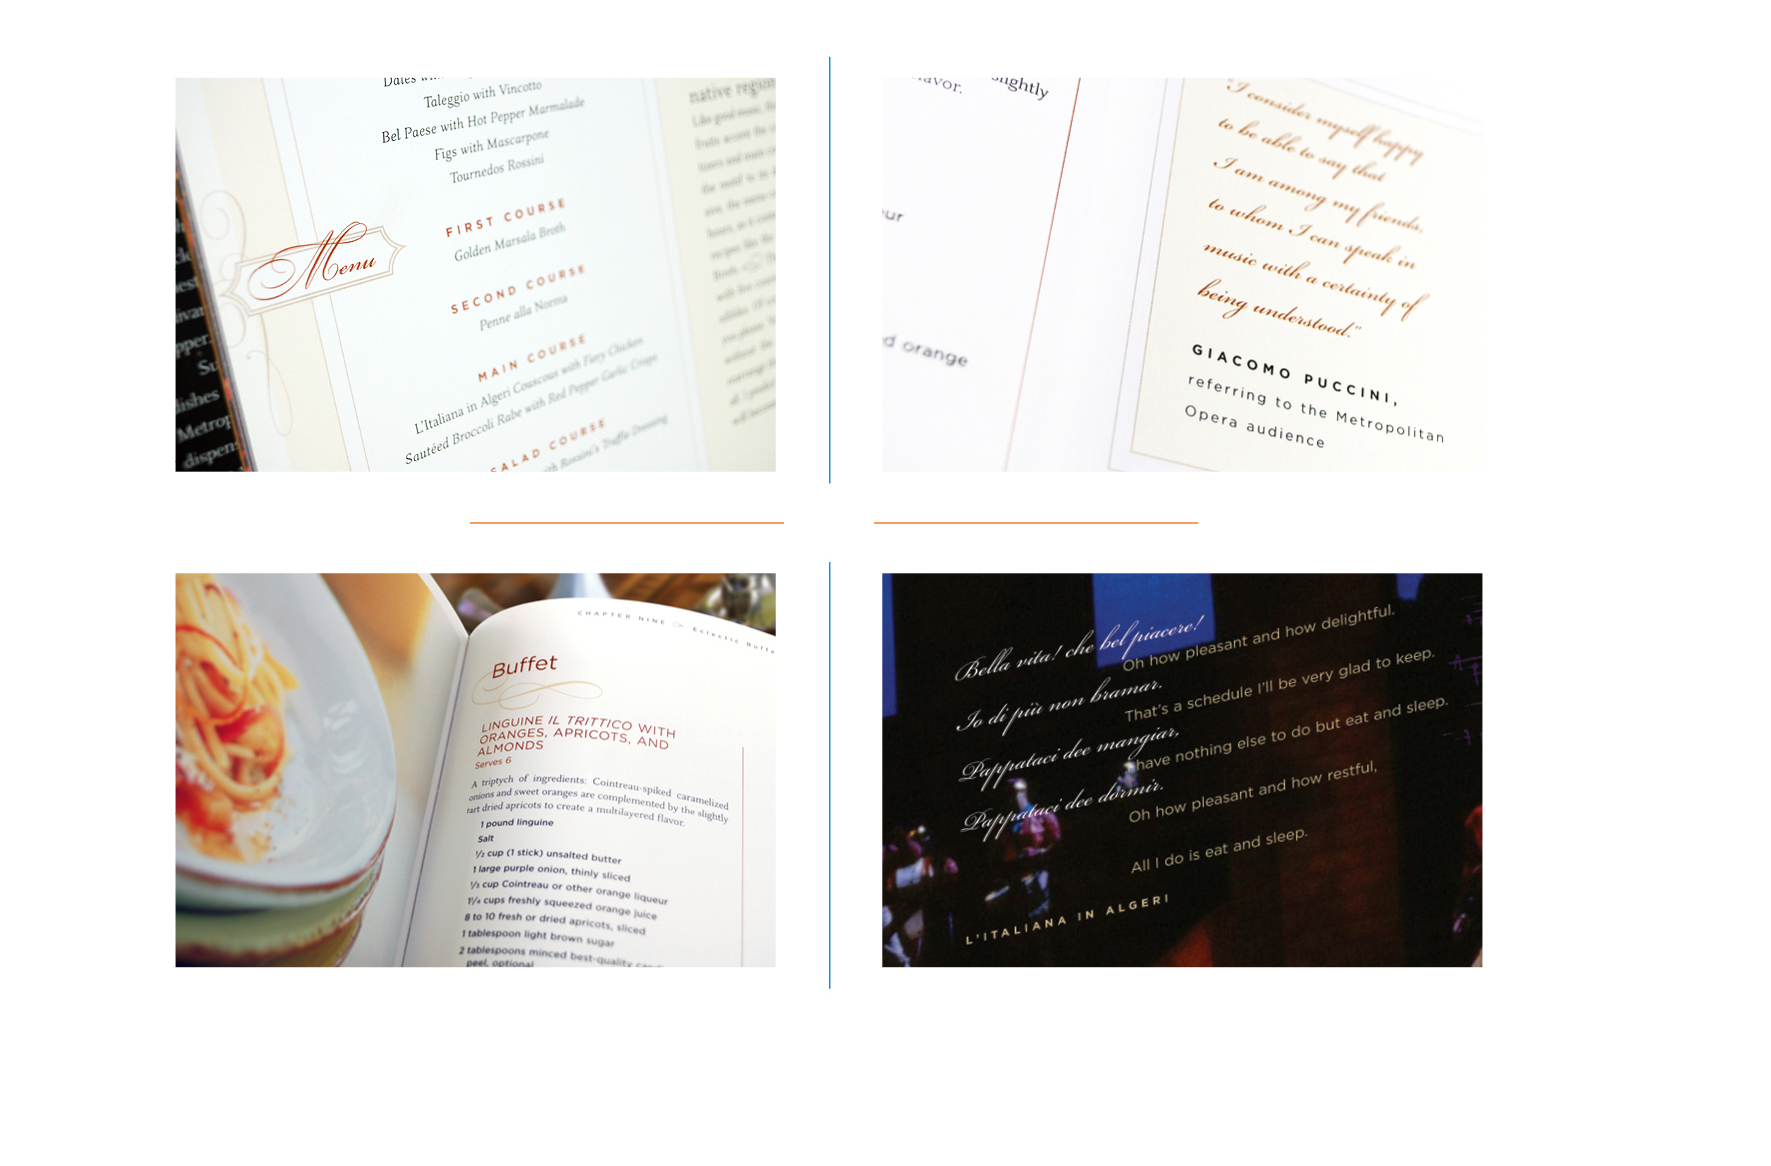 Interior details -  Chapter opener menu // Composer quote // Recipe // Opera lyric with translation